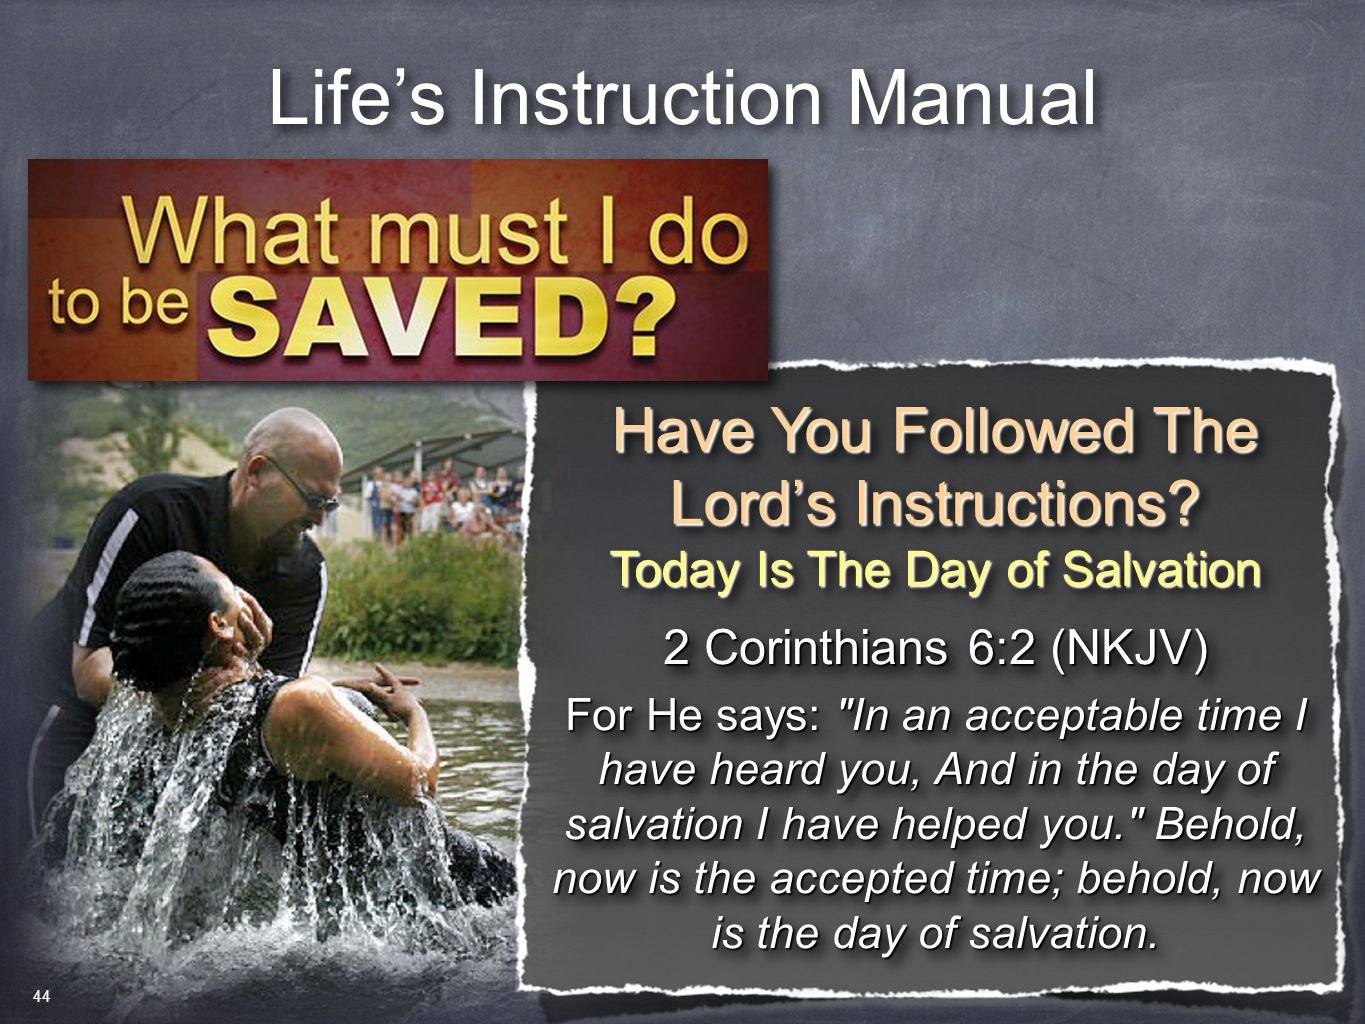 Life's Instruction Manual Have You Followed The Lord's Instructions? Today Is The Day of Salvation Have You Followed The Lord's Instructions? Today Is